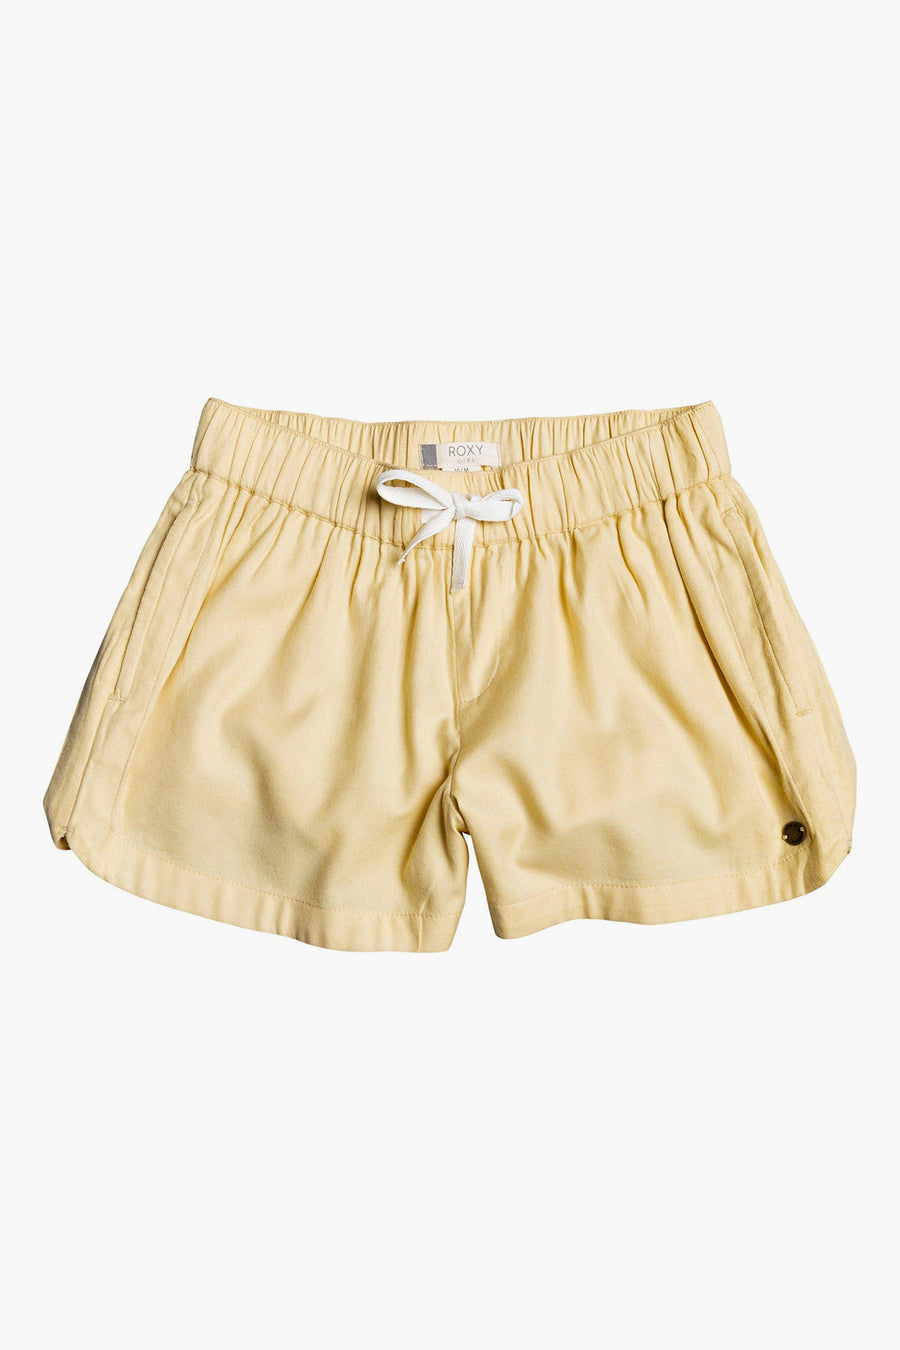 Roxy Una Mattina Girls Shorts